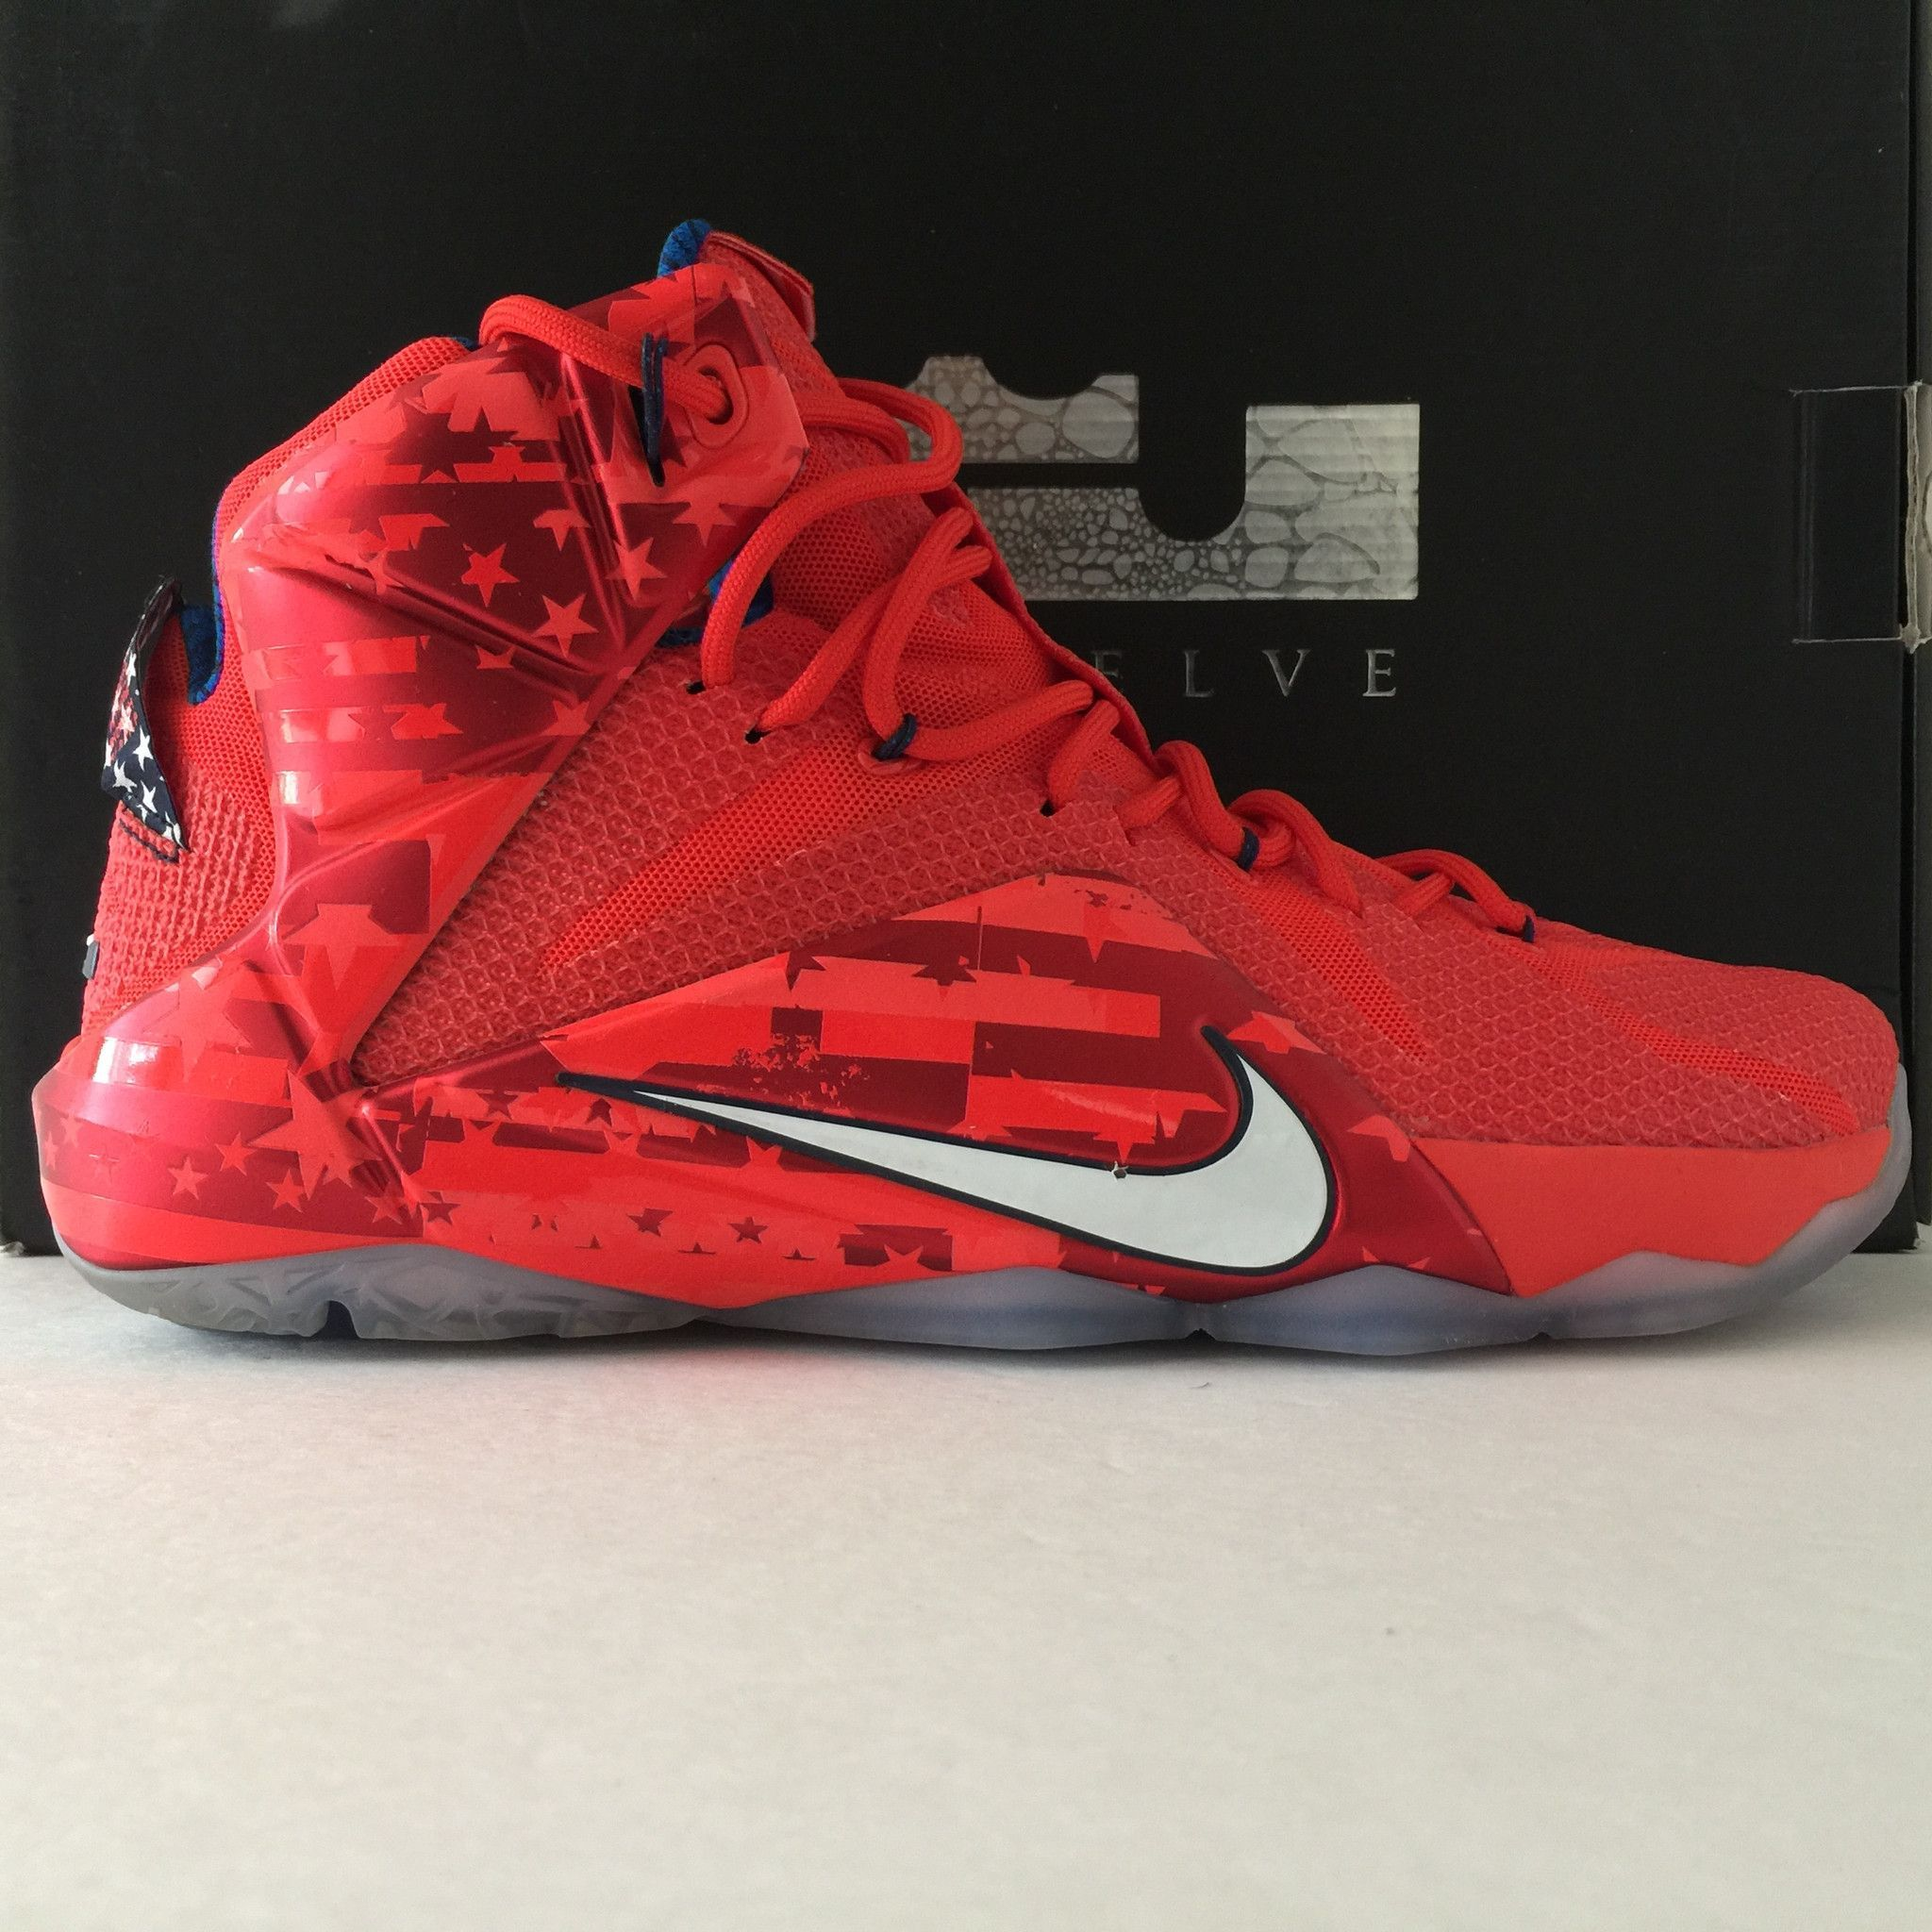 6016a8cd5f179 ... reduced nike lebron 12 xii se independence day size 12 fa457 93899 ...